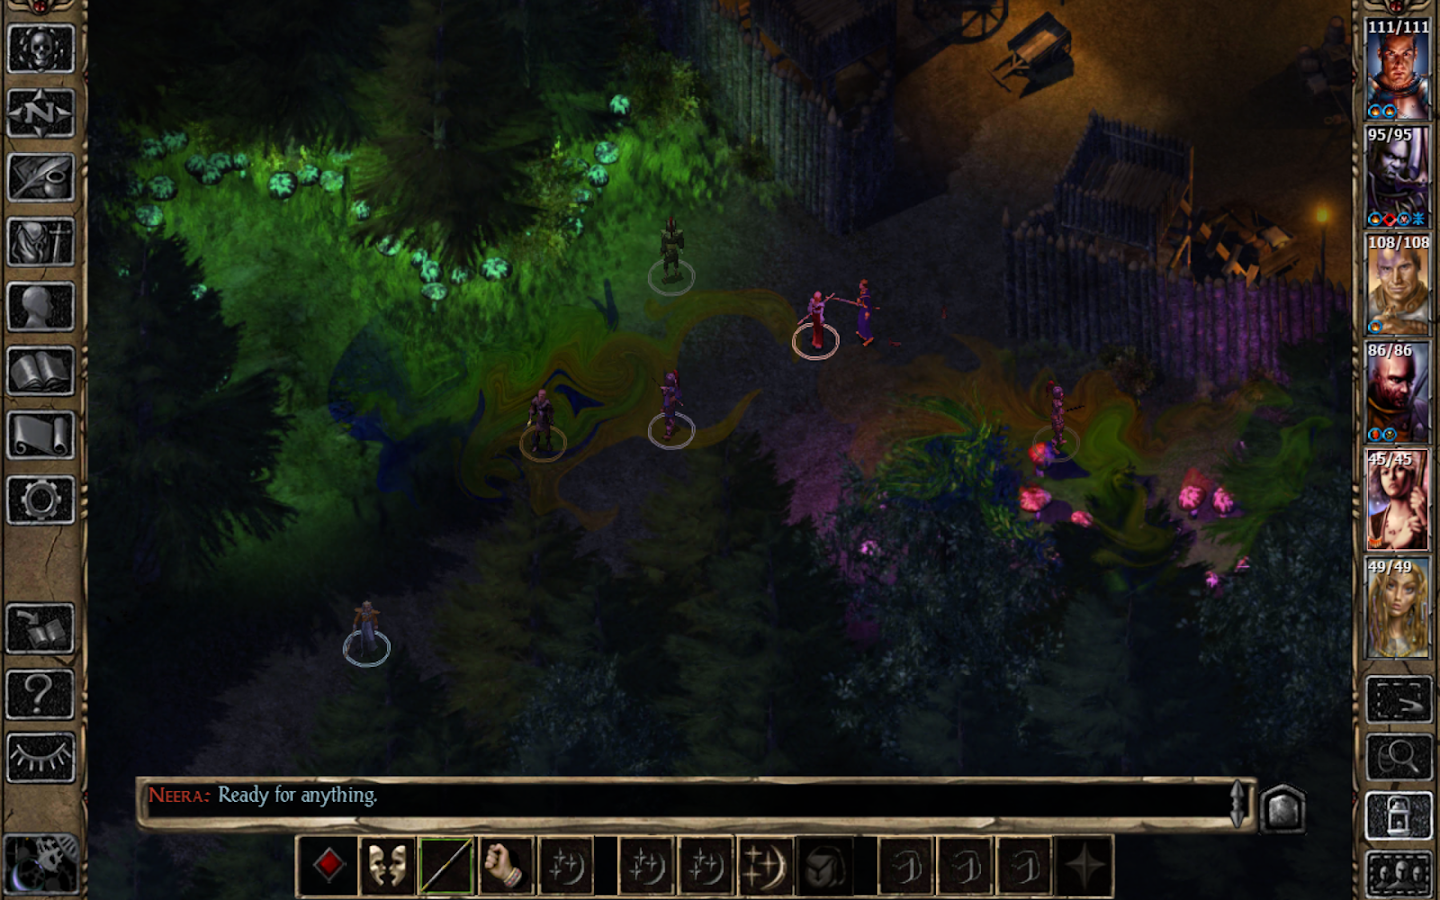 Baldur's Gate II Screenshot 9